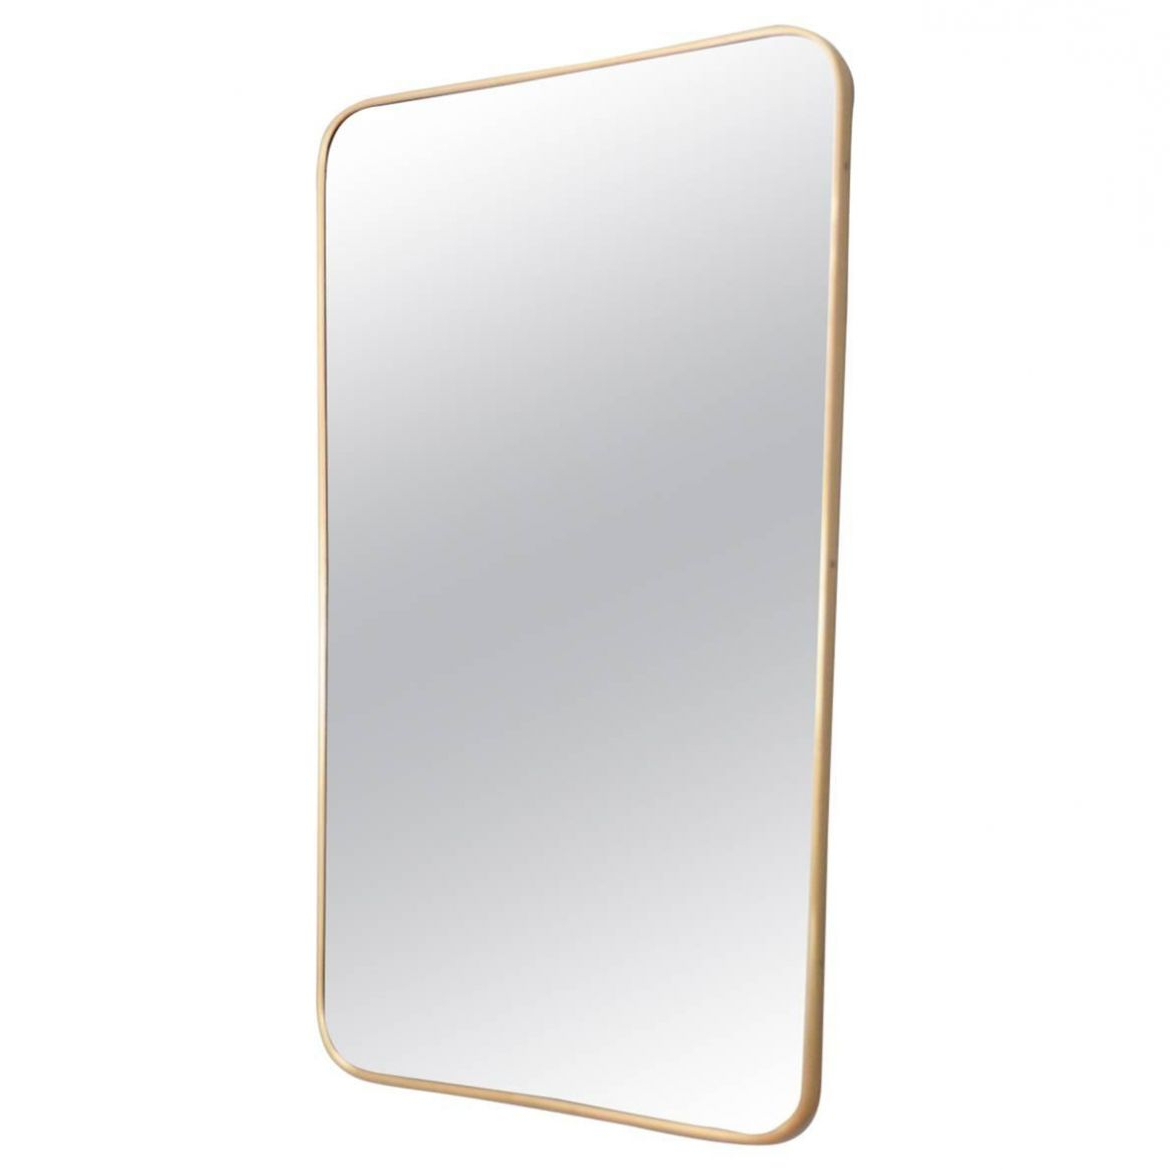 Fashionable Mid Century Wall Mirrors Intended For Italian Mid Century Wall Mirror With Brass Frame From Sant'ambrogio & De  Berti, 1950S (View 6 of 20)